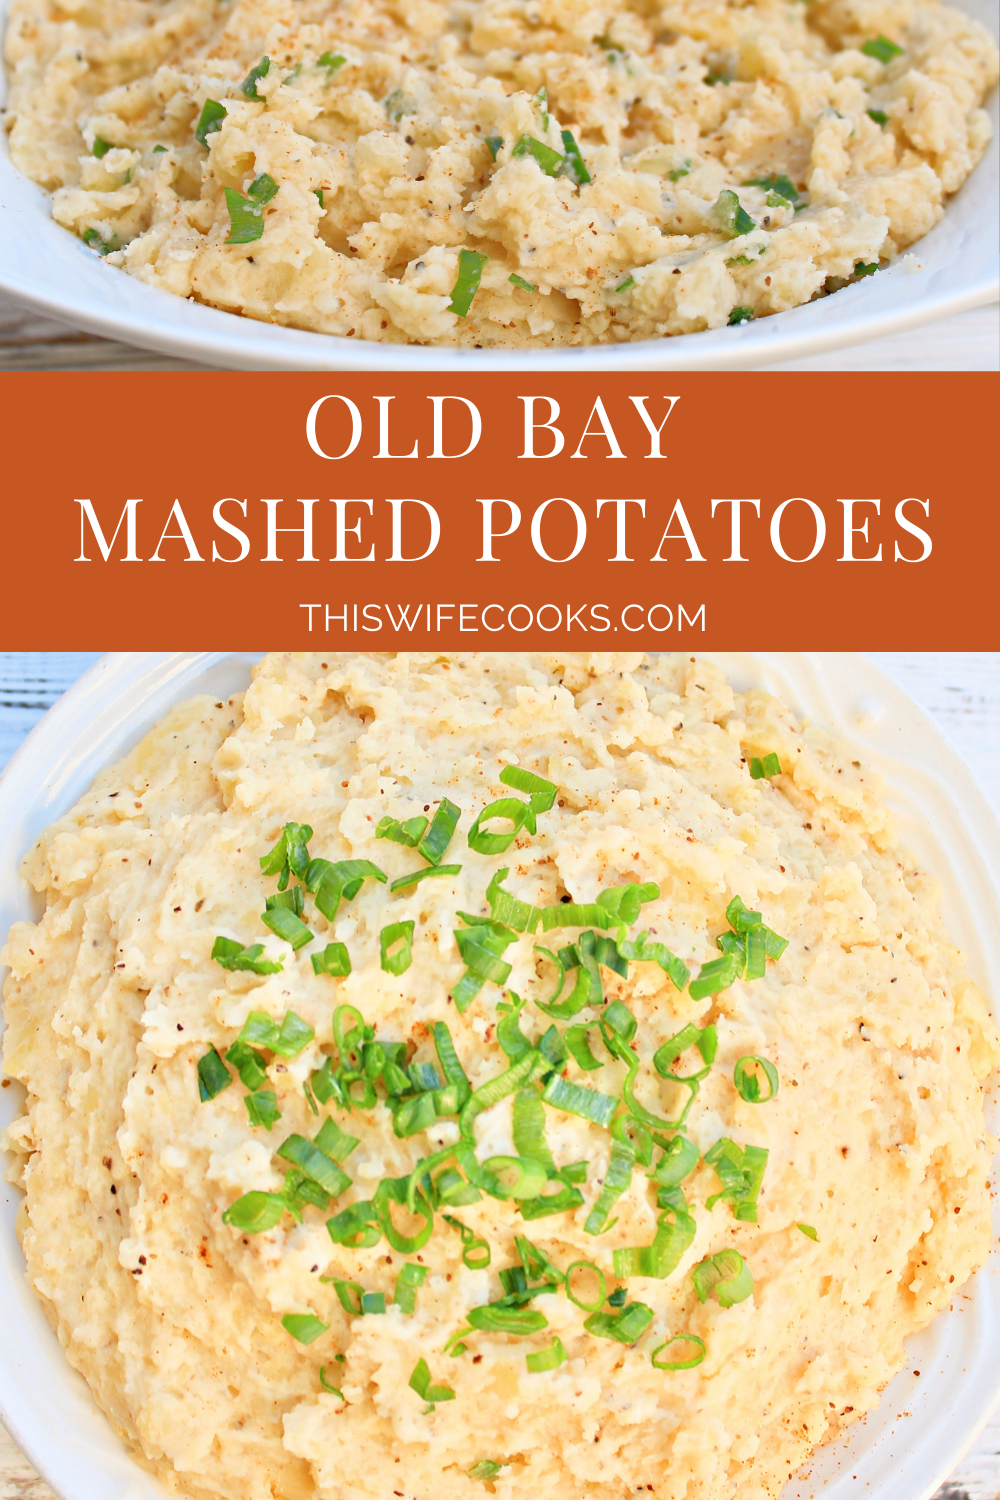 Old Bay Mashed Potatoes ~The distinctive seasoning blend of Old Bay gives traditional mashed potatoes a tasty New England twist.  via @thiswifecooks